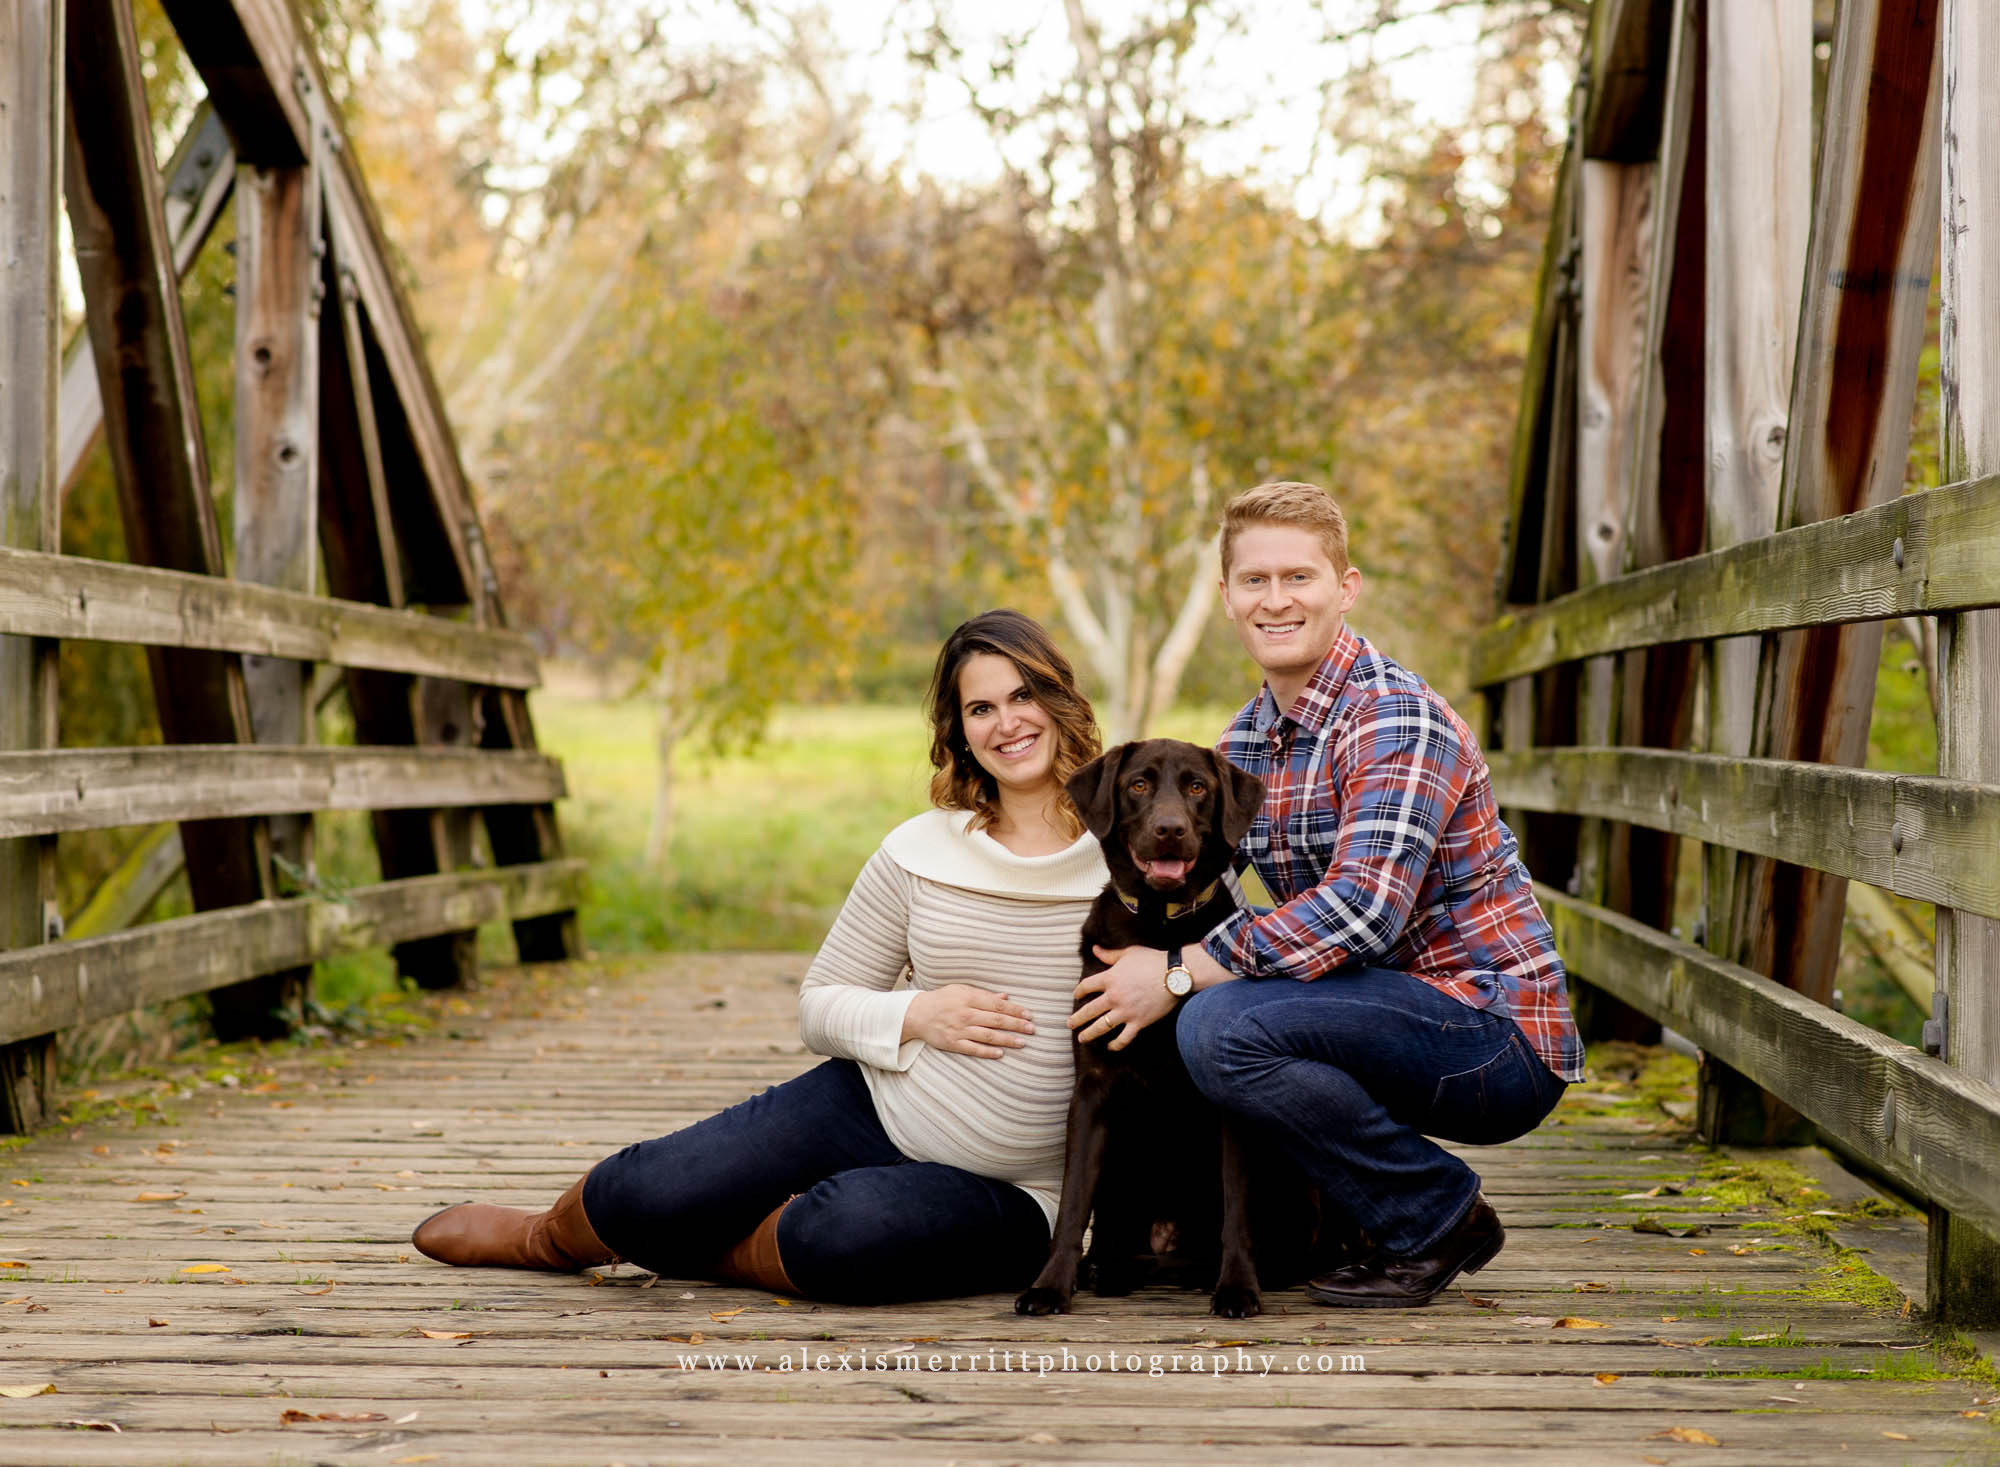 Bothell Maternity Photographer I Met Kristen And Burt A Few Weeks Before Their Son Was Born For Mini Session We Headed Over To My Favorite